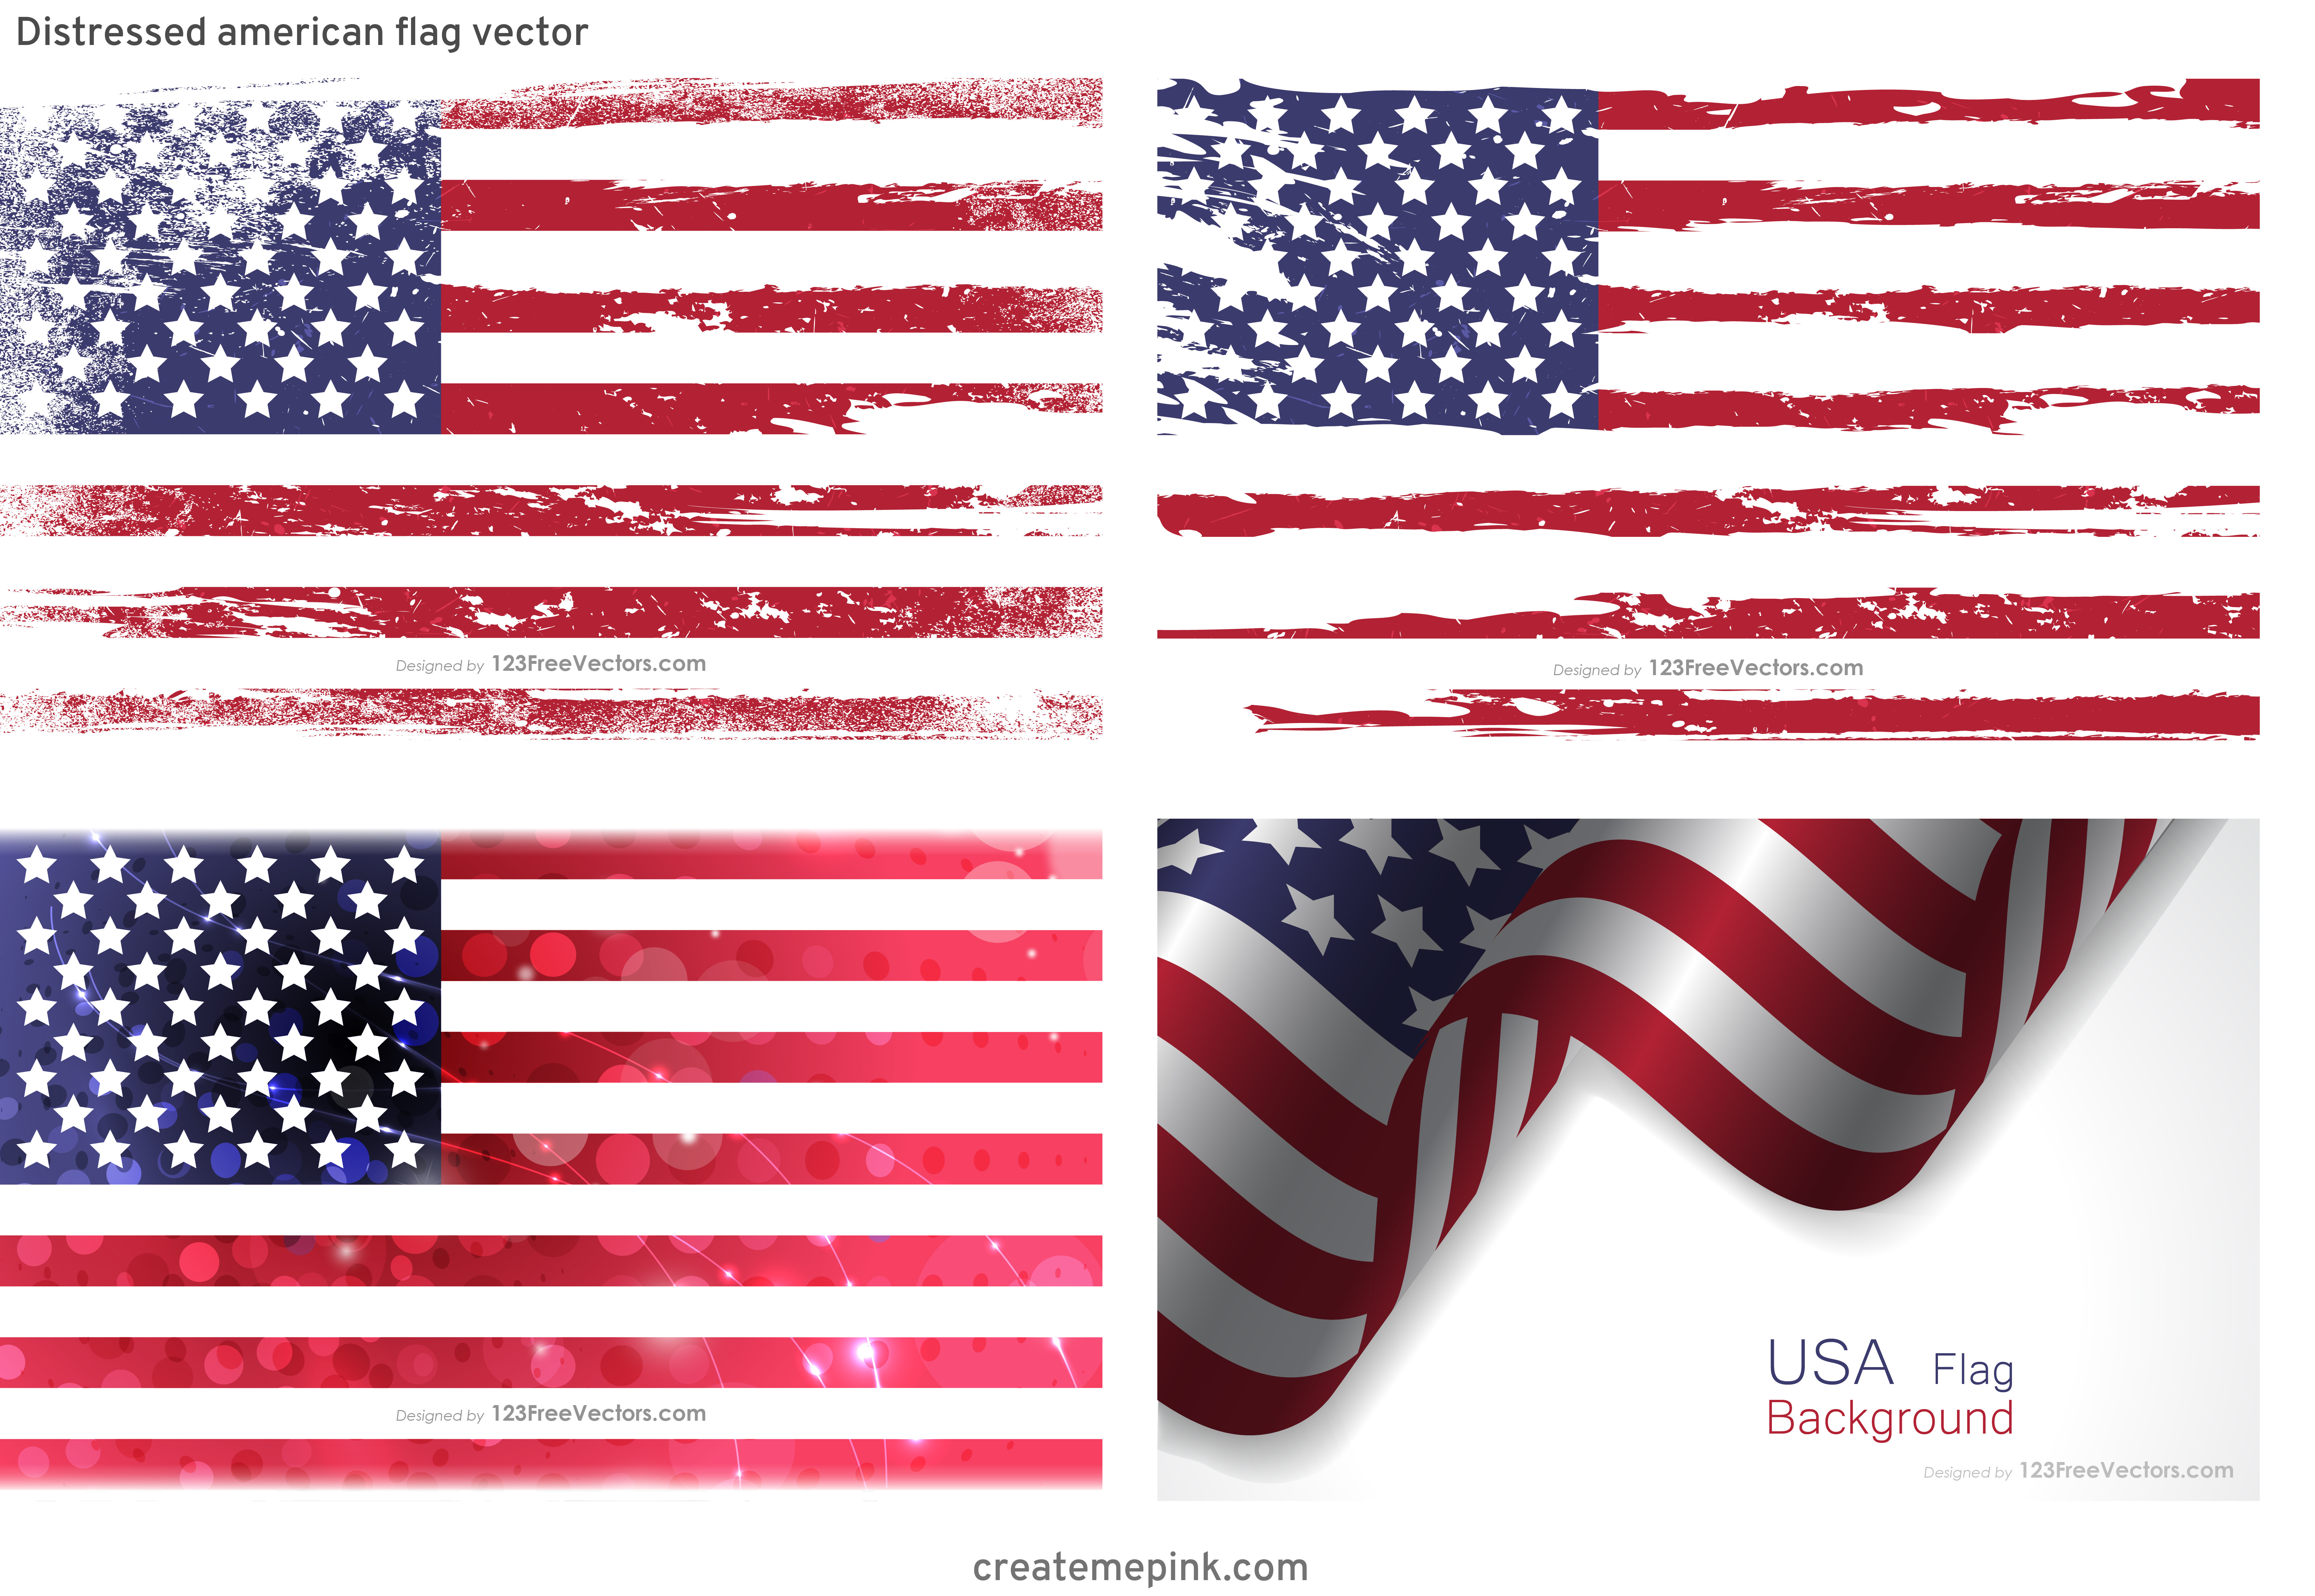 Waving Distressed Flag Vector: Distressed American Flag Vector